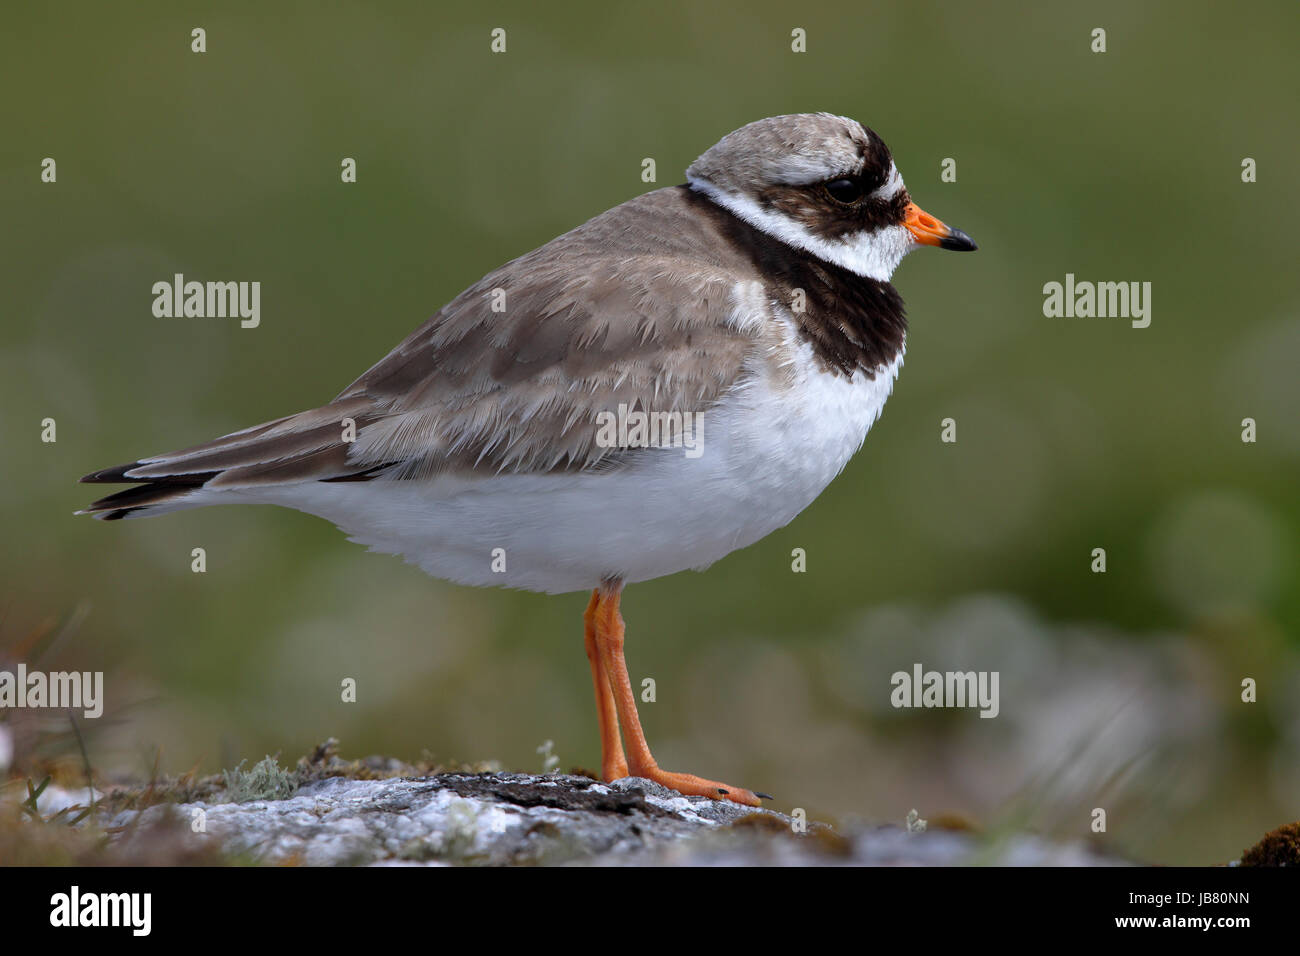 Ringed Plover Charadrius hiaticula breeding female away from nest area while male takes over incubating - Stock Image